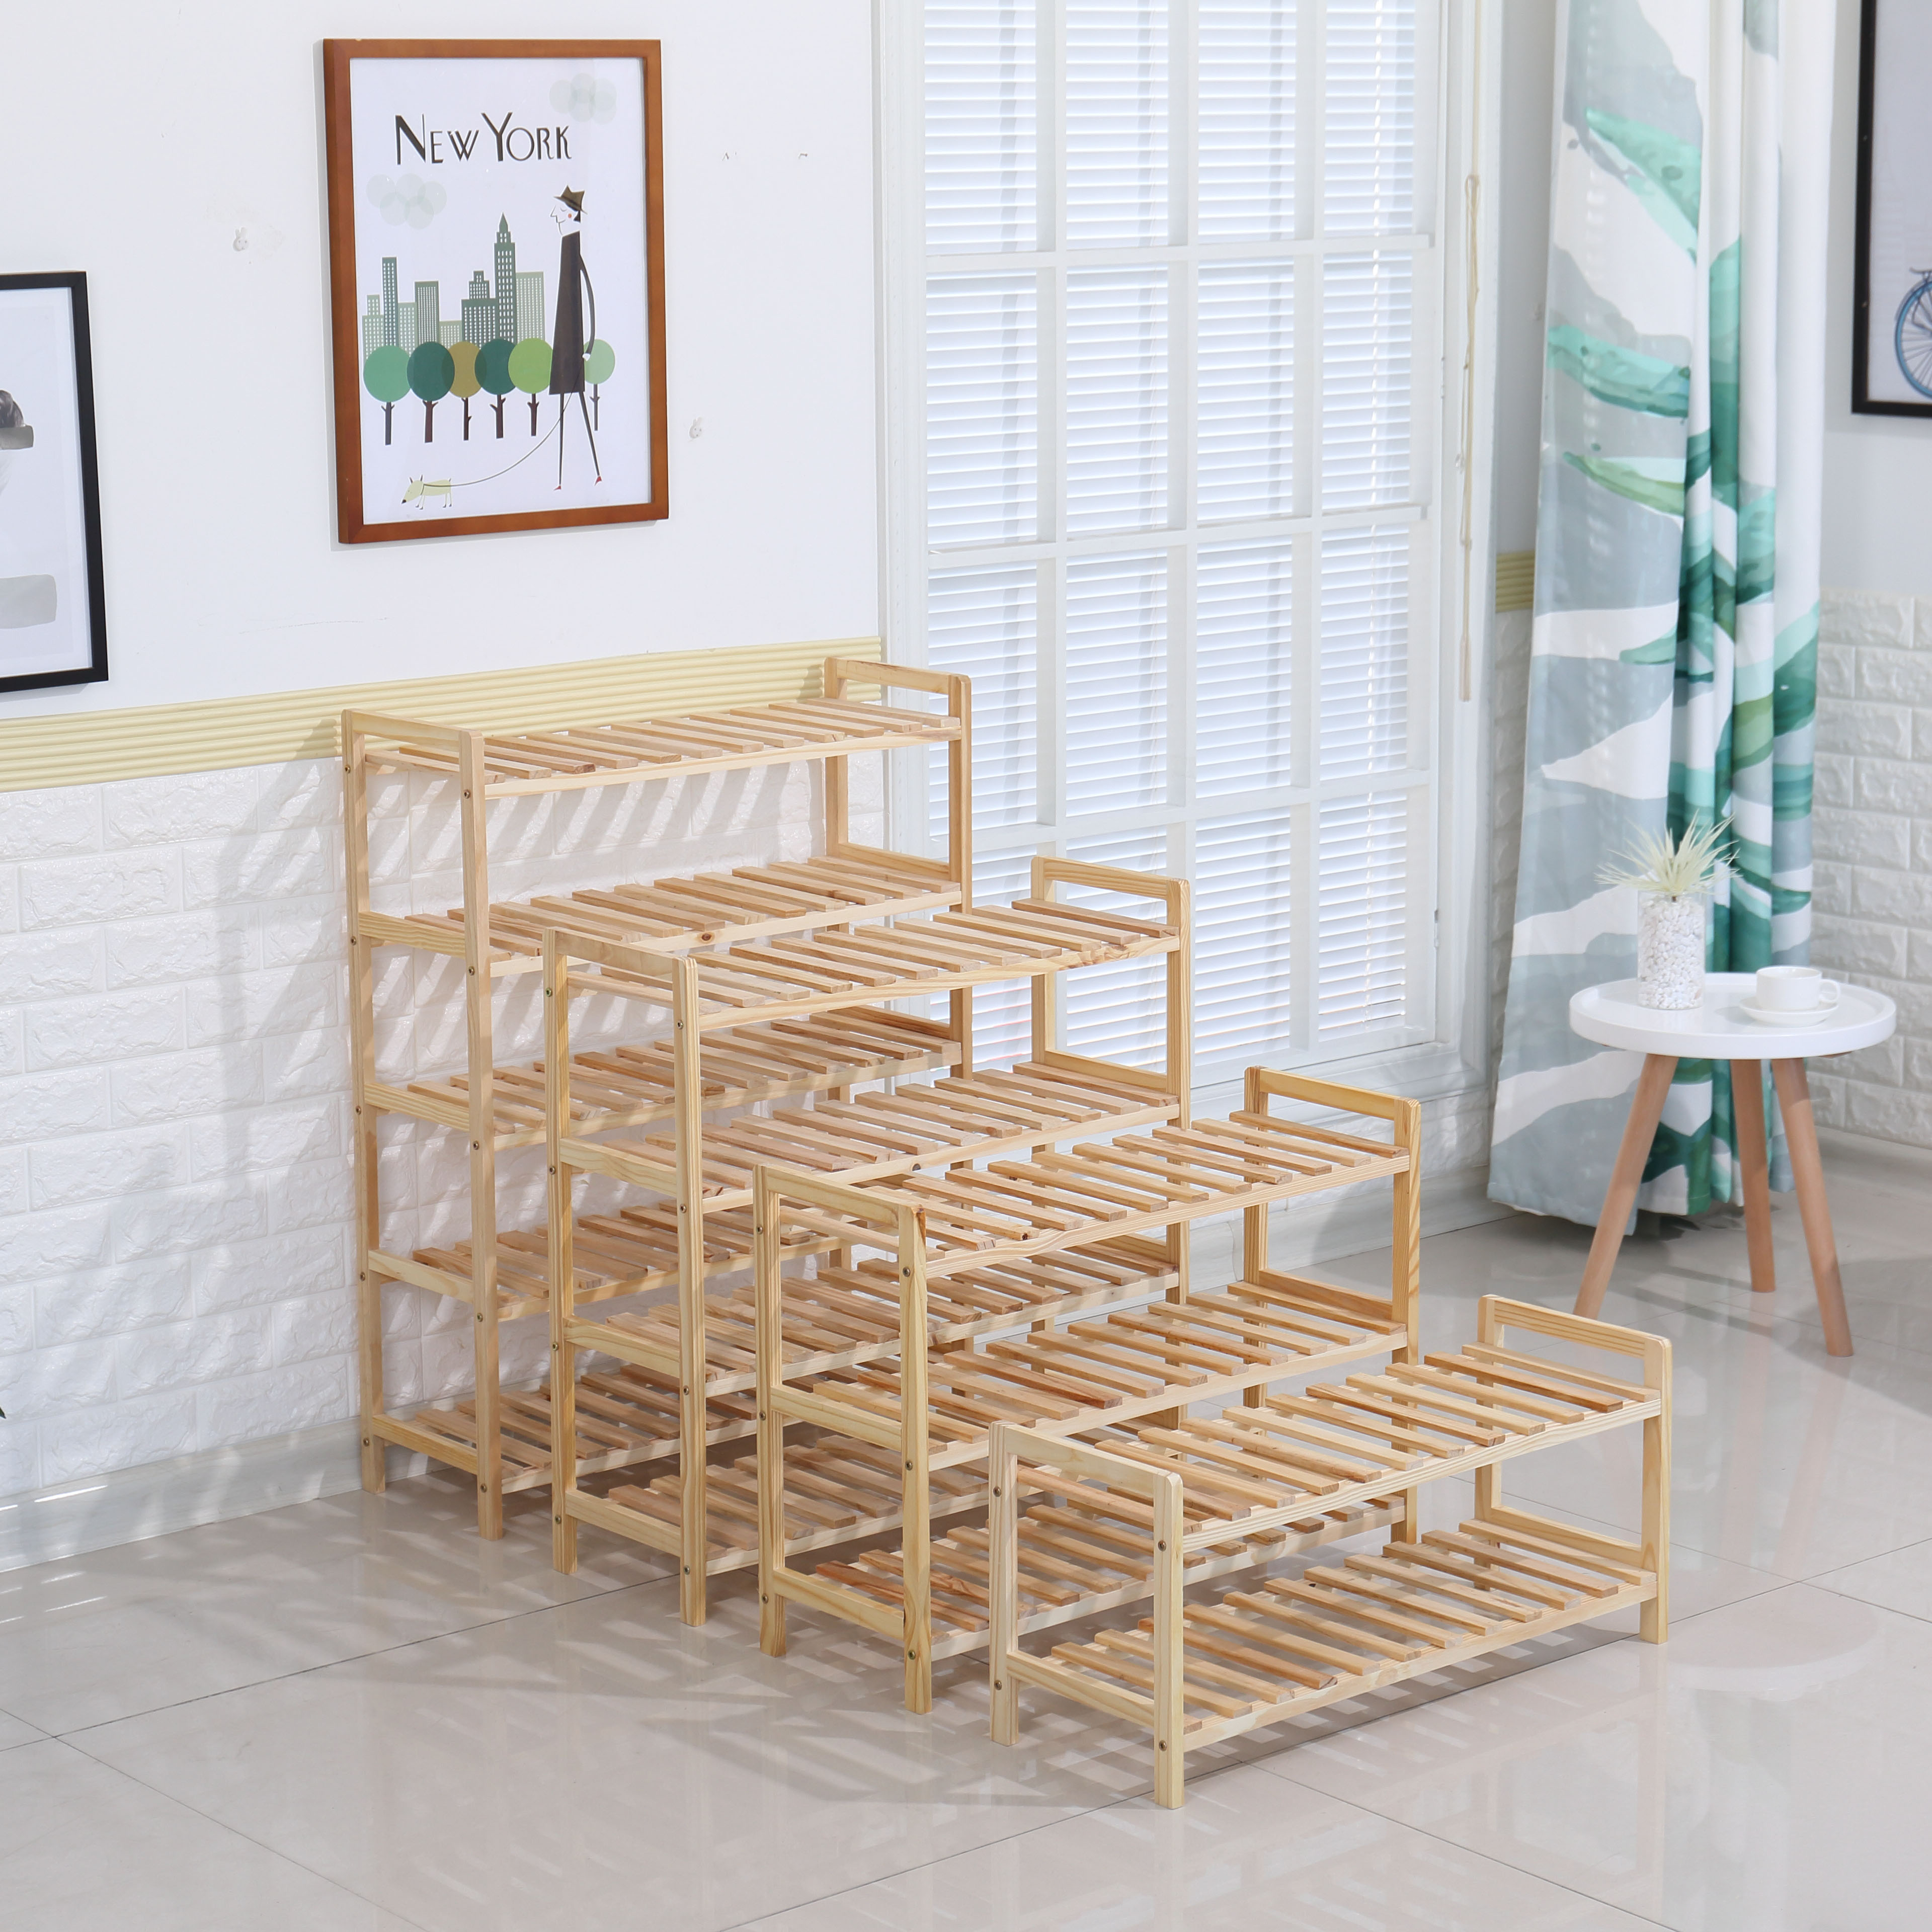 RTS Product Wooden 4tiers Shoe Racks shoe storage Cabinet